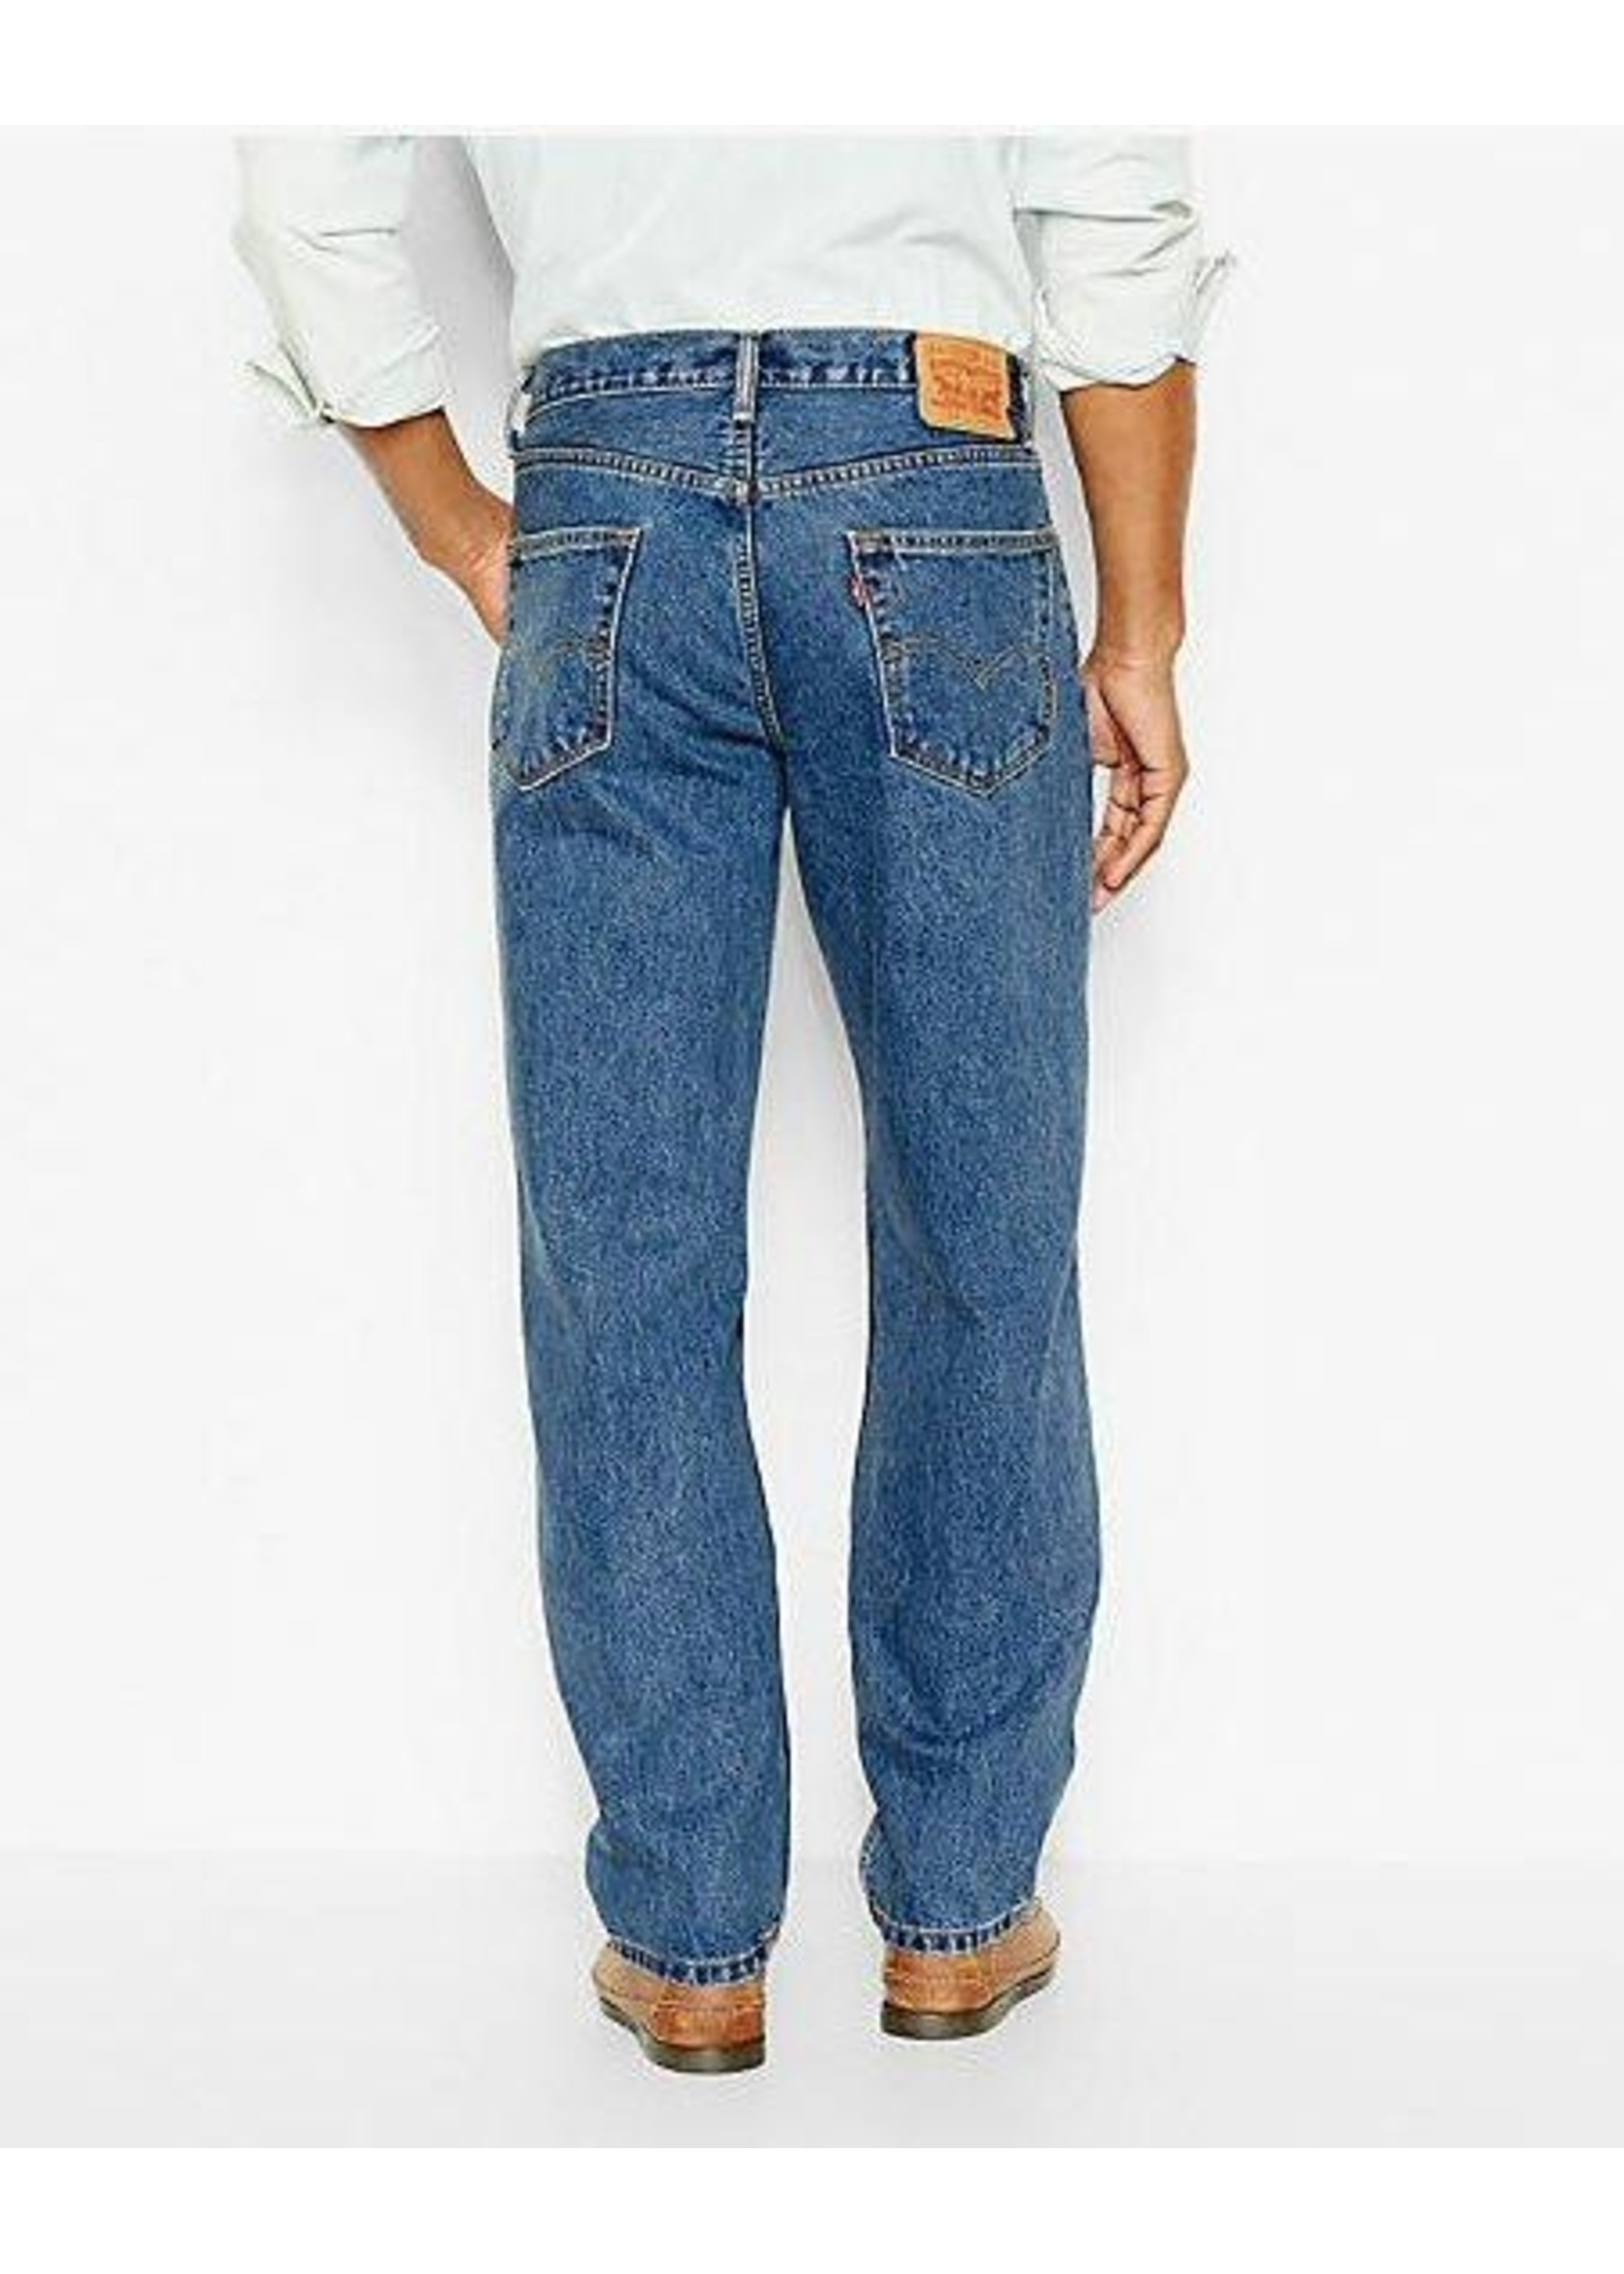 Levis Inc 550™ Relaxed Fit Jeans